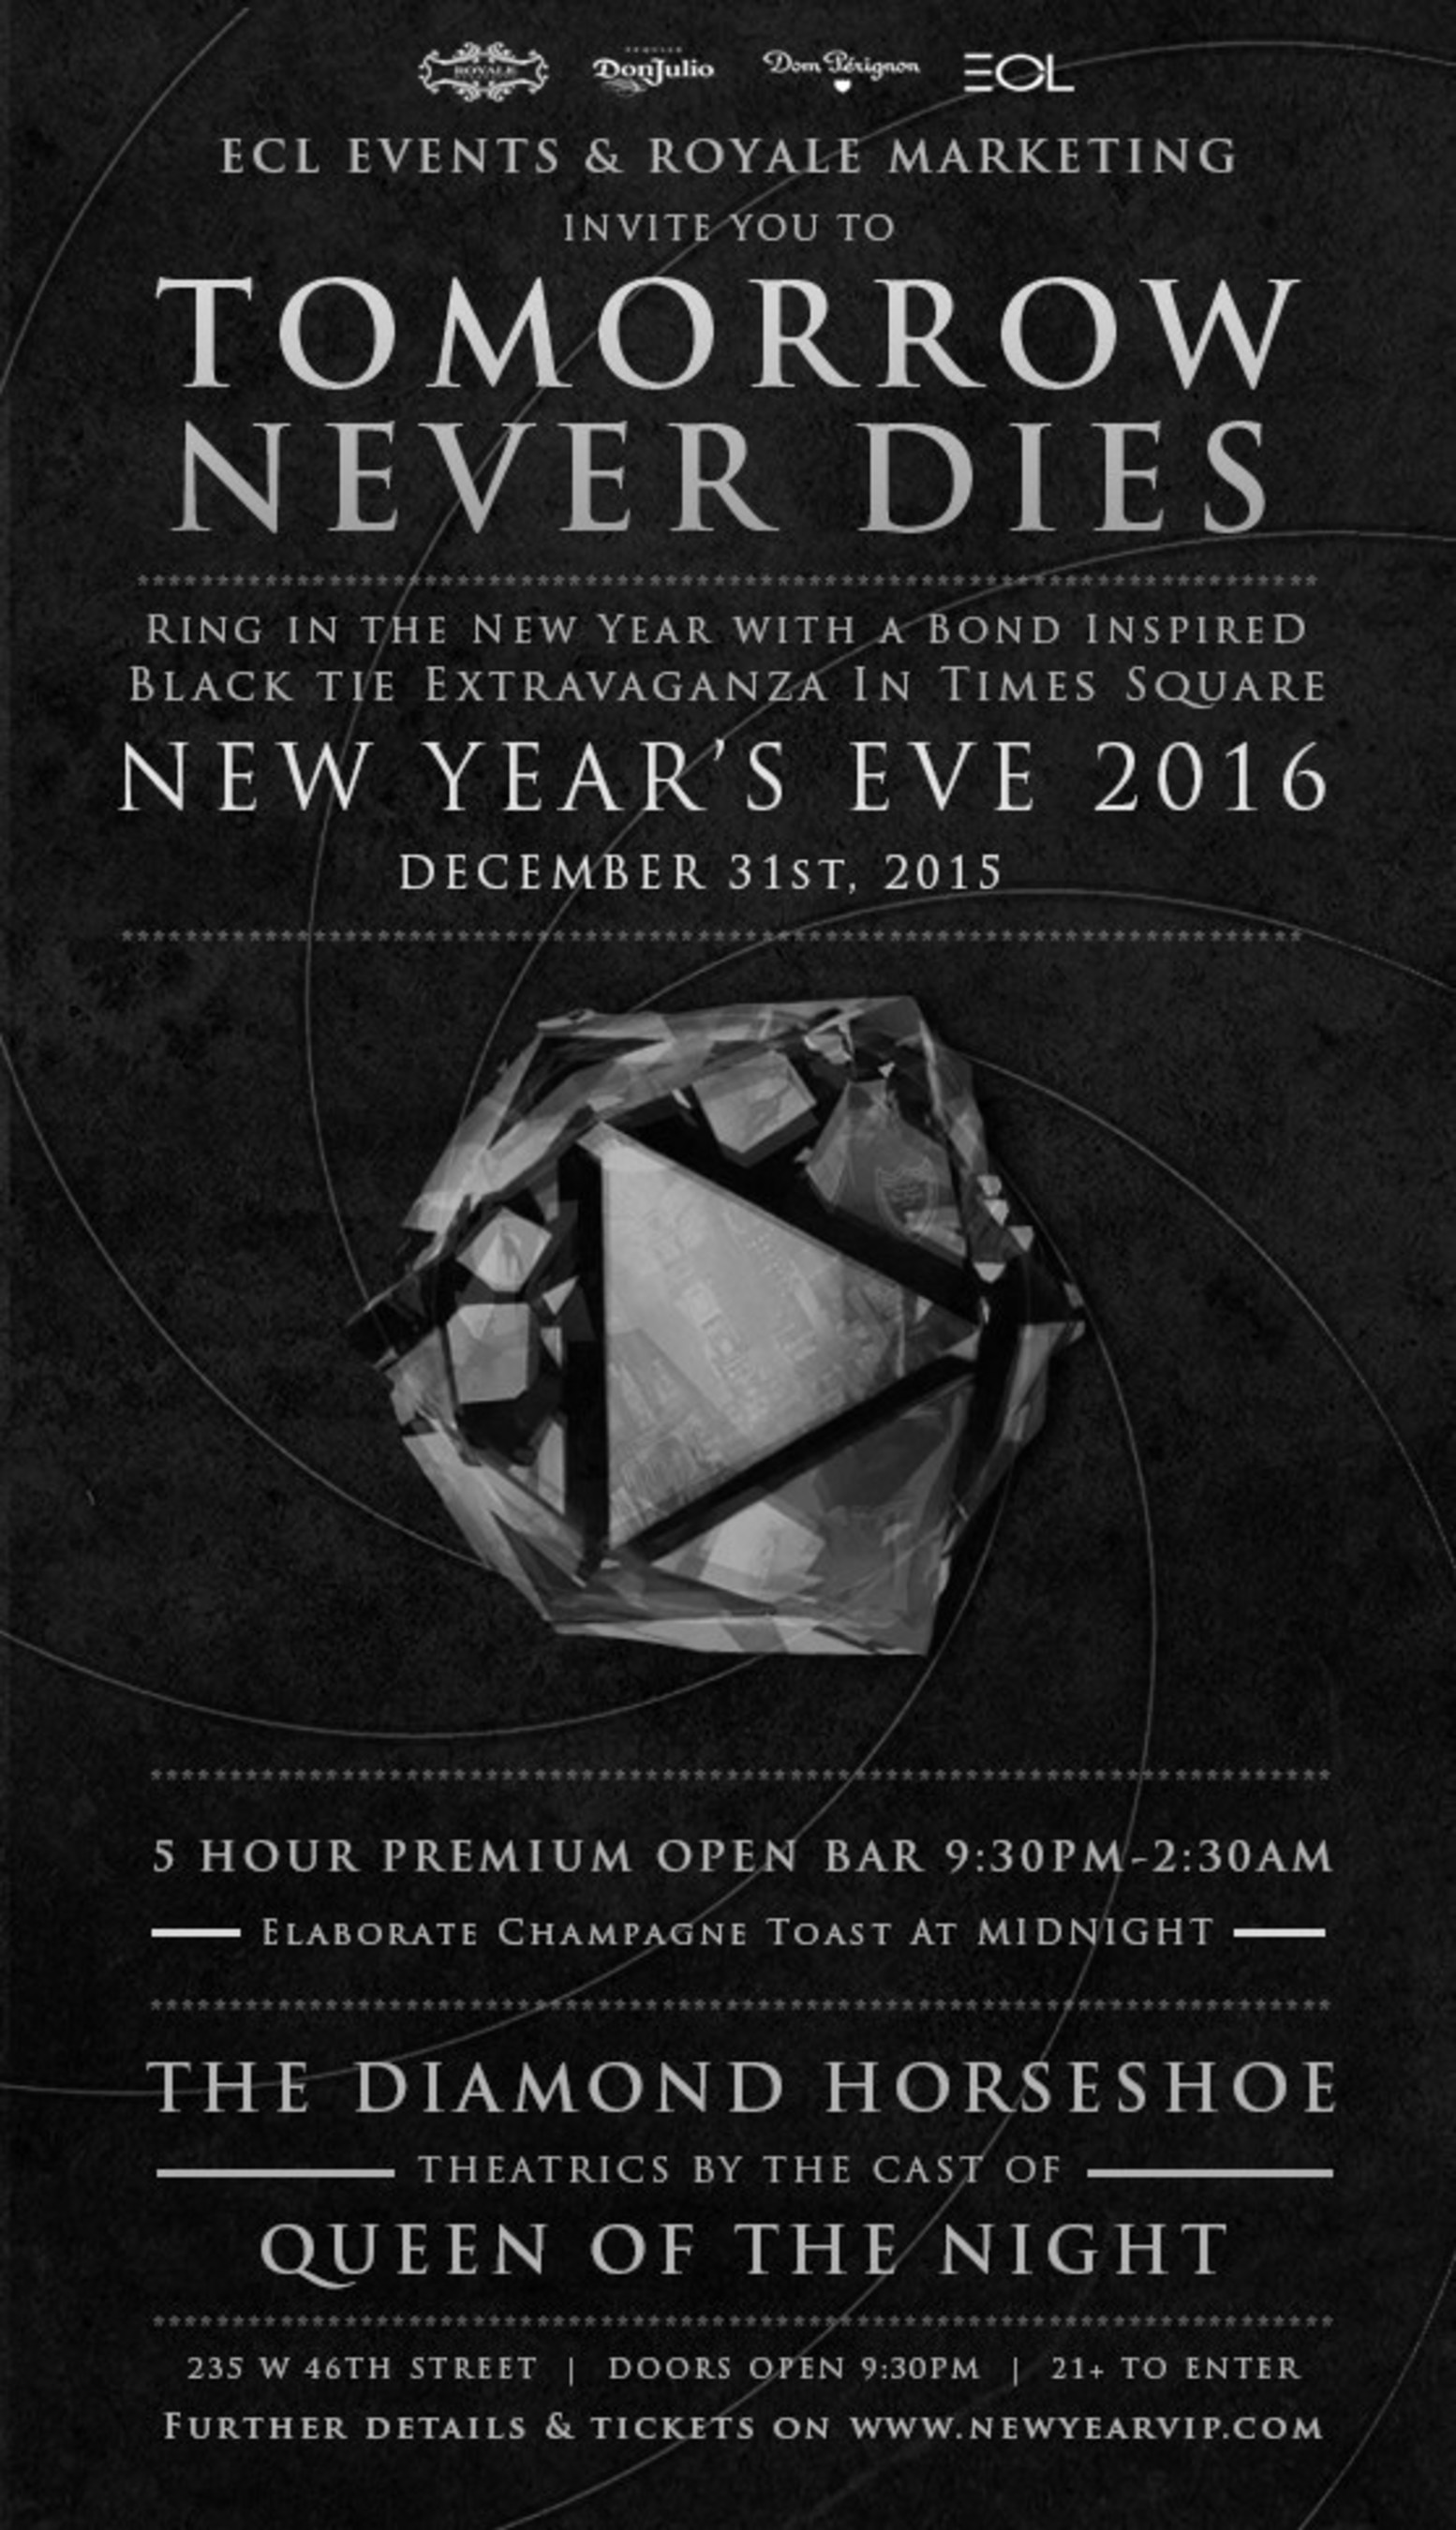 Royale Marketing Presents a Bond-Inspired New Year's Eve Gala at The Diamond Horseshoe in Times